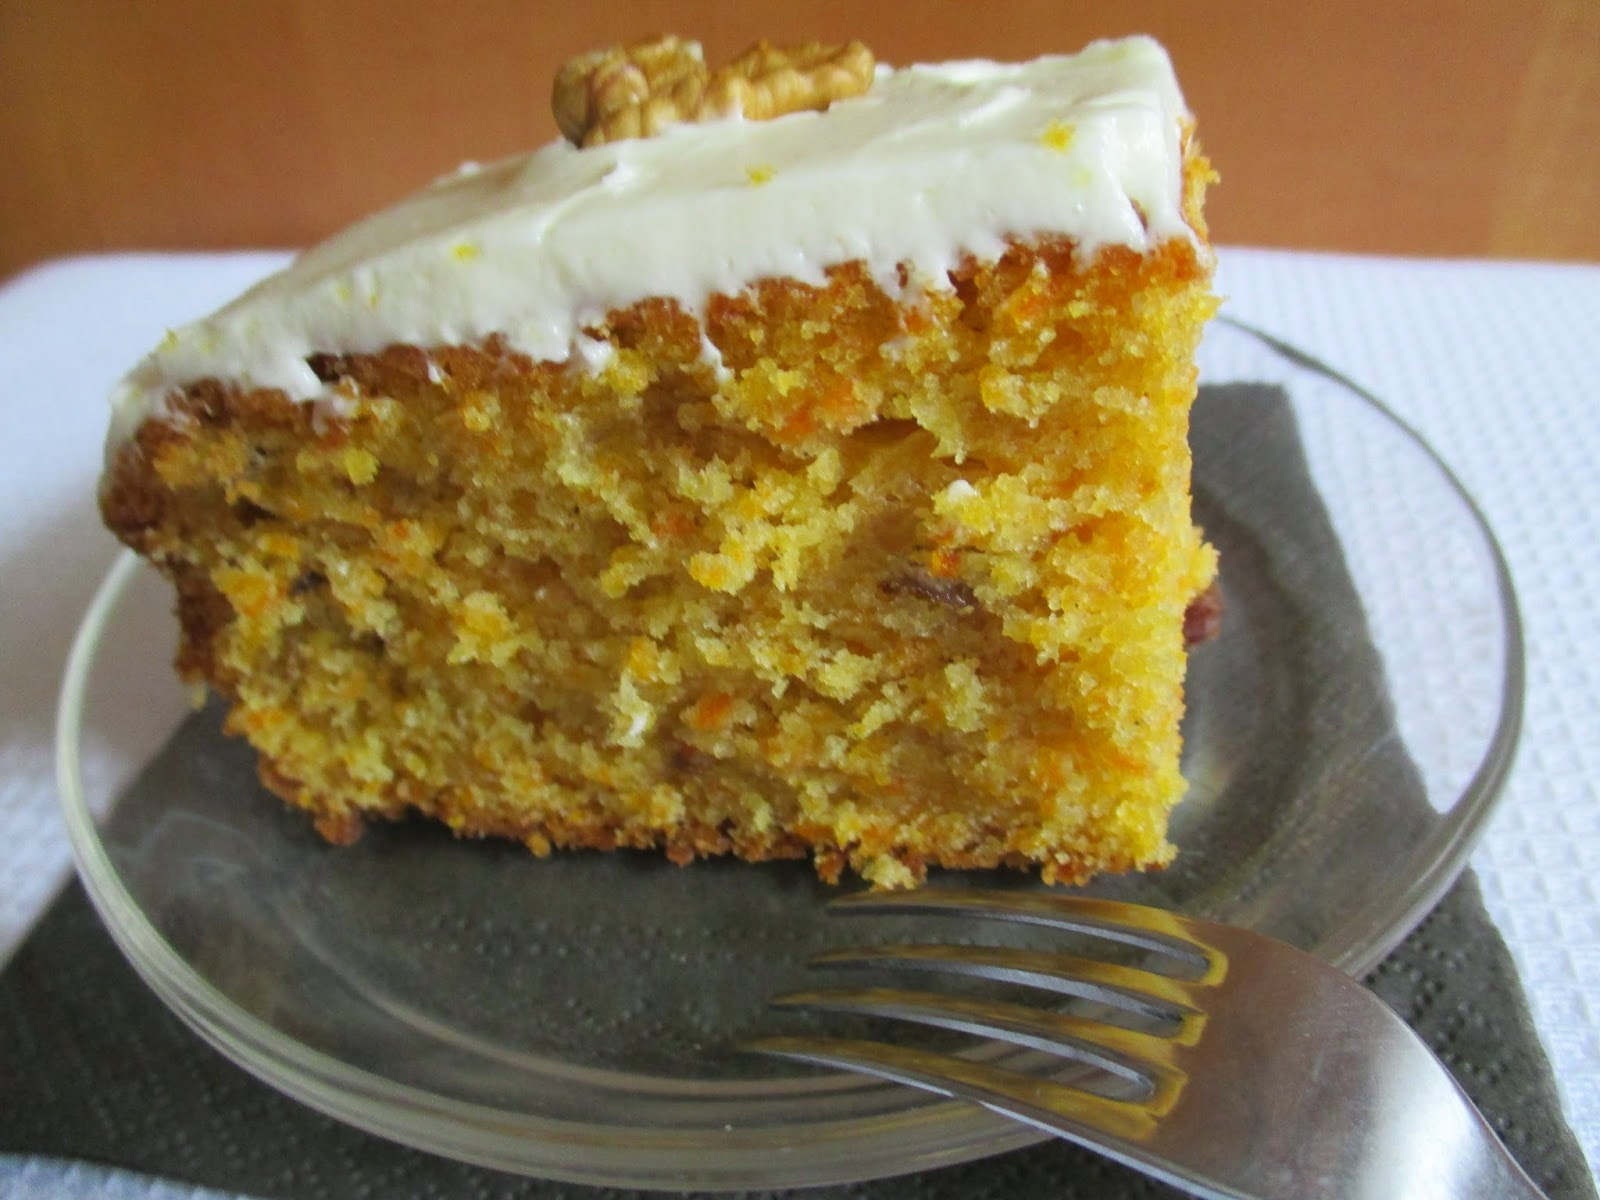 Carrot Cake Thermomix Velocidad Cuchara